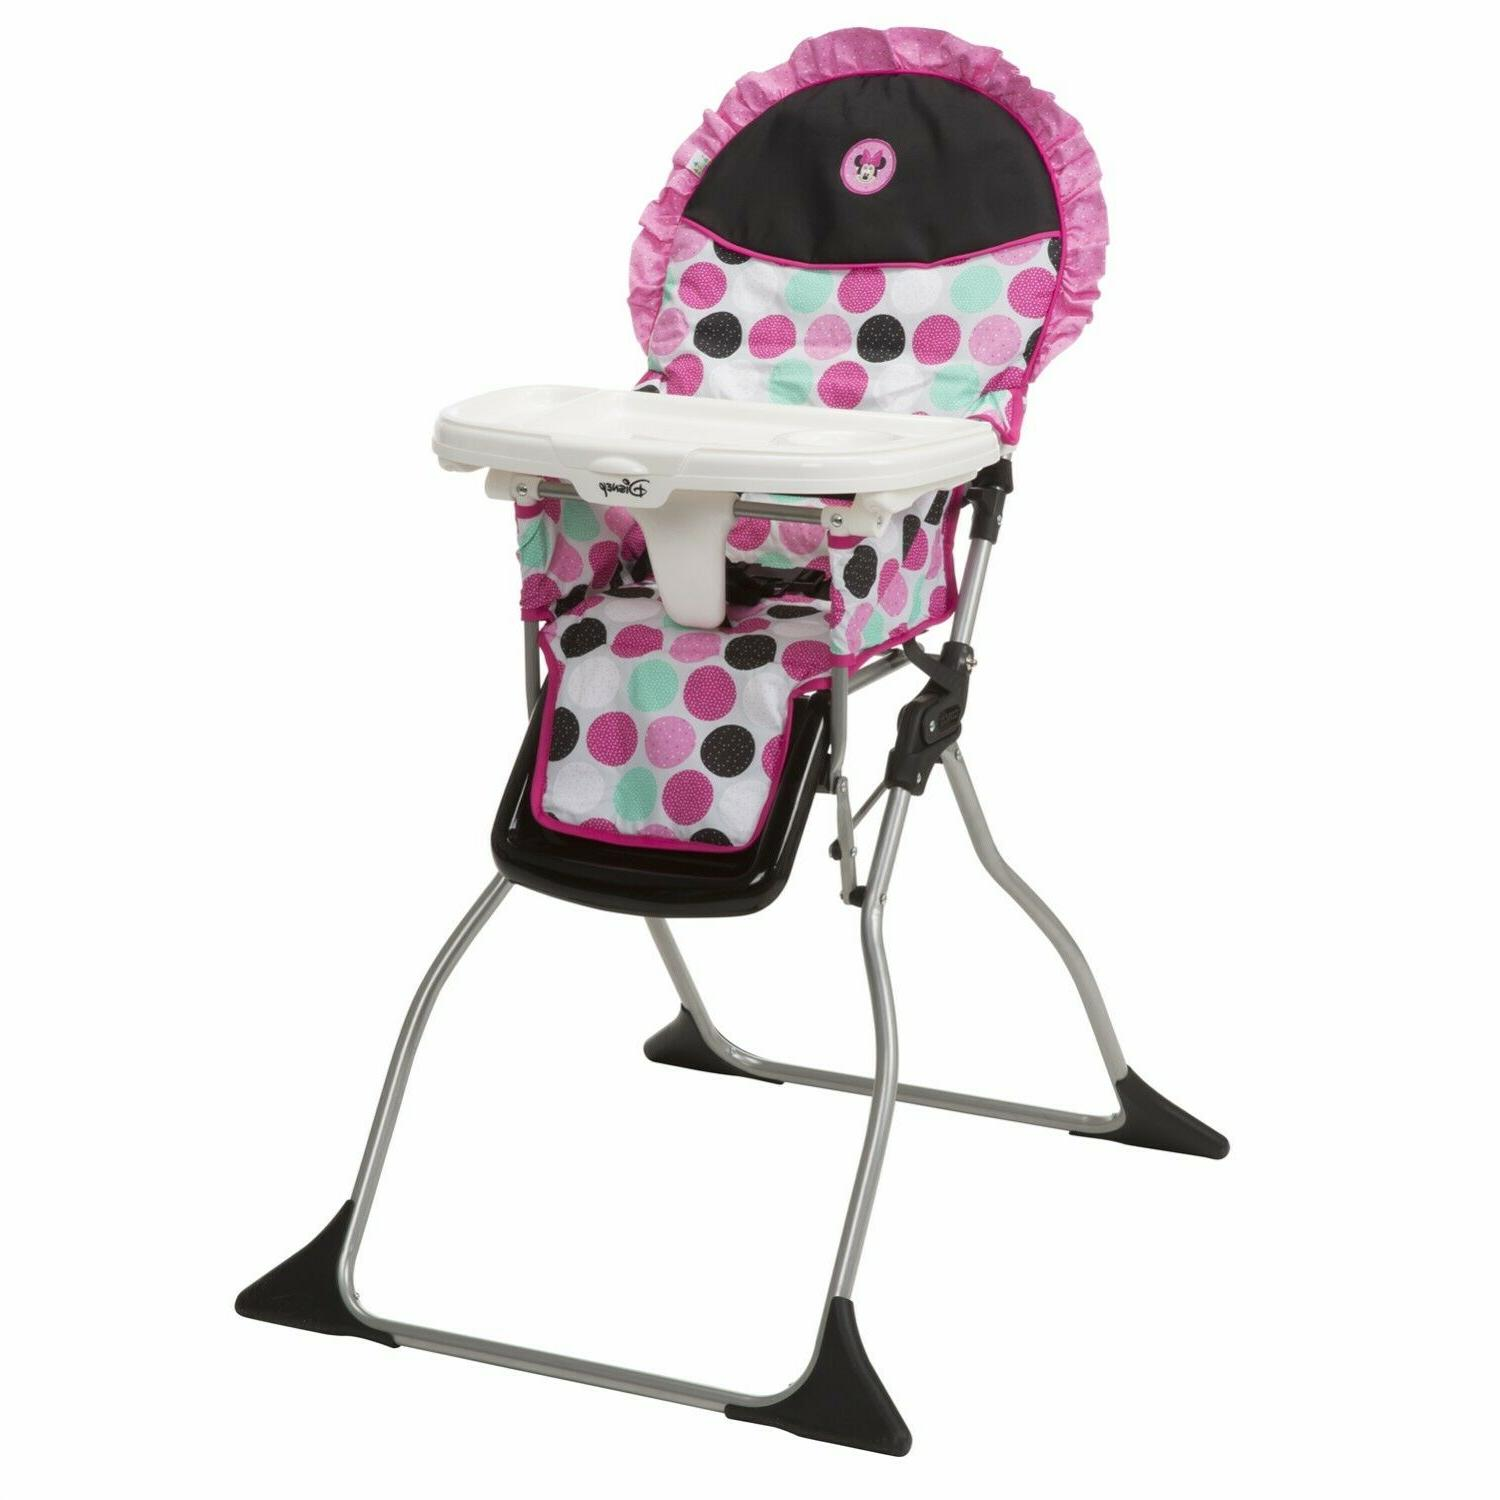 Disney Baby System Seat High Chair New